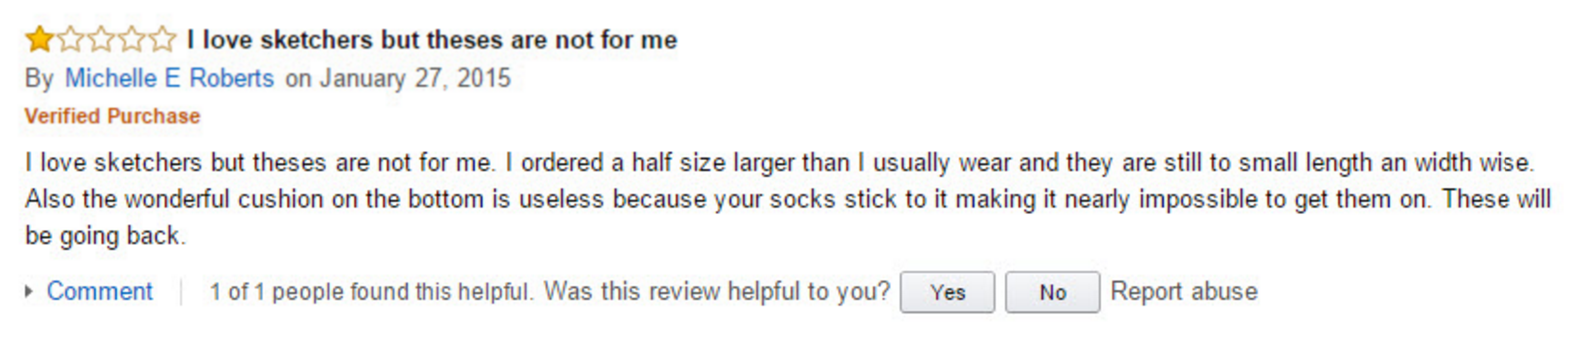 This Amazon customer review of a pair of walking shoes translates to the problem being with the fit of the shoe for a specific person, not necessarily with the product.